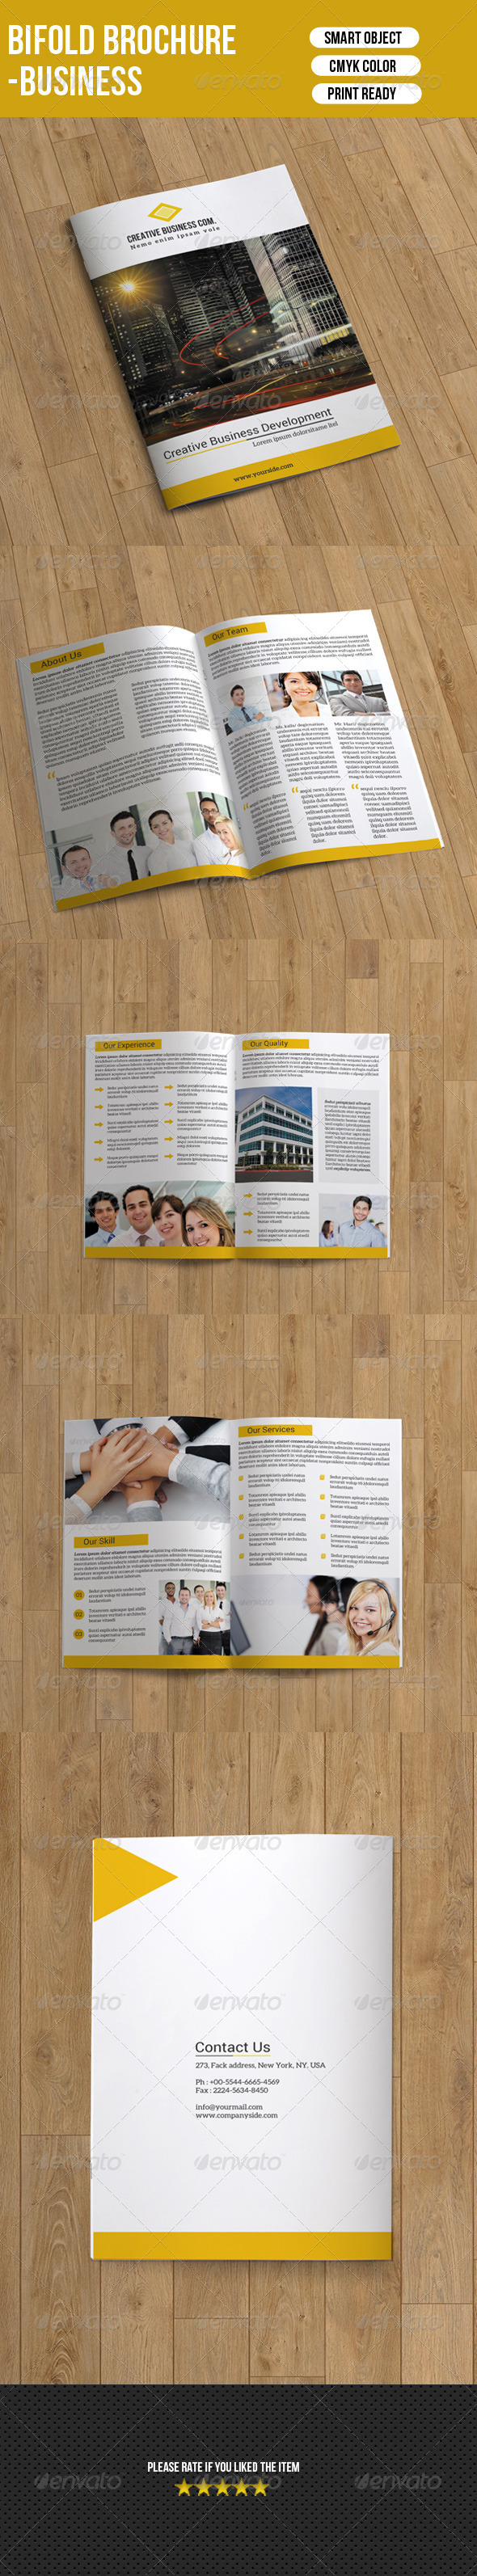 Corporate Brochure Template-8 Pages